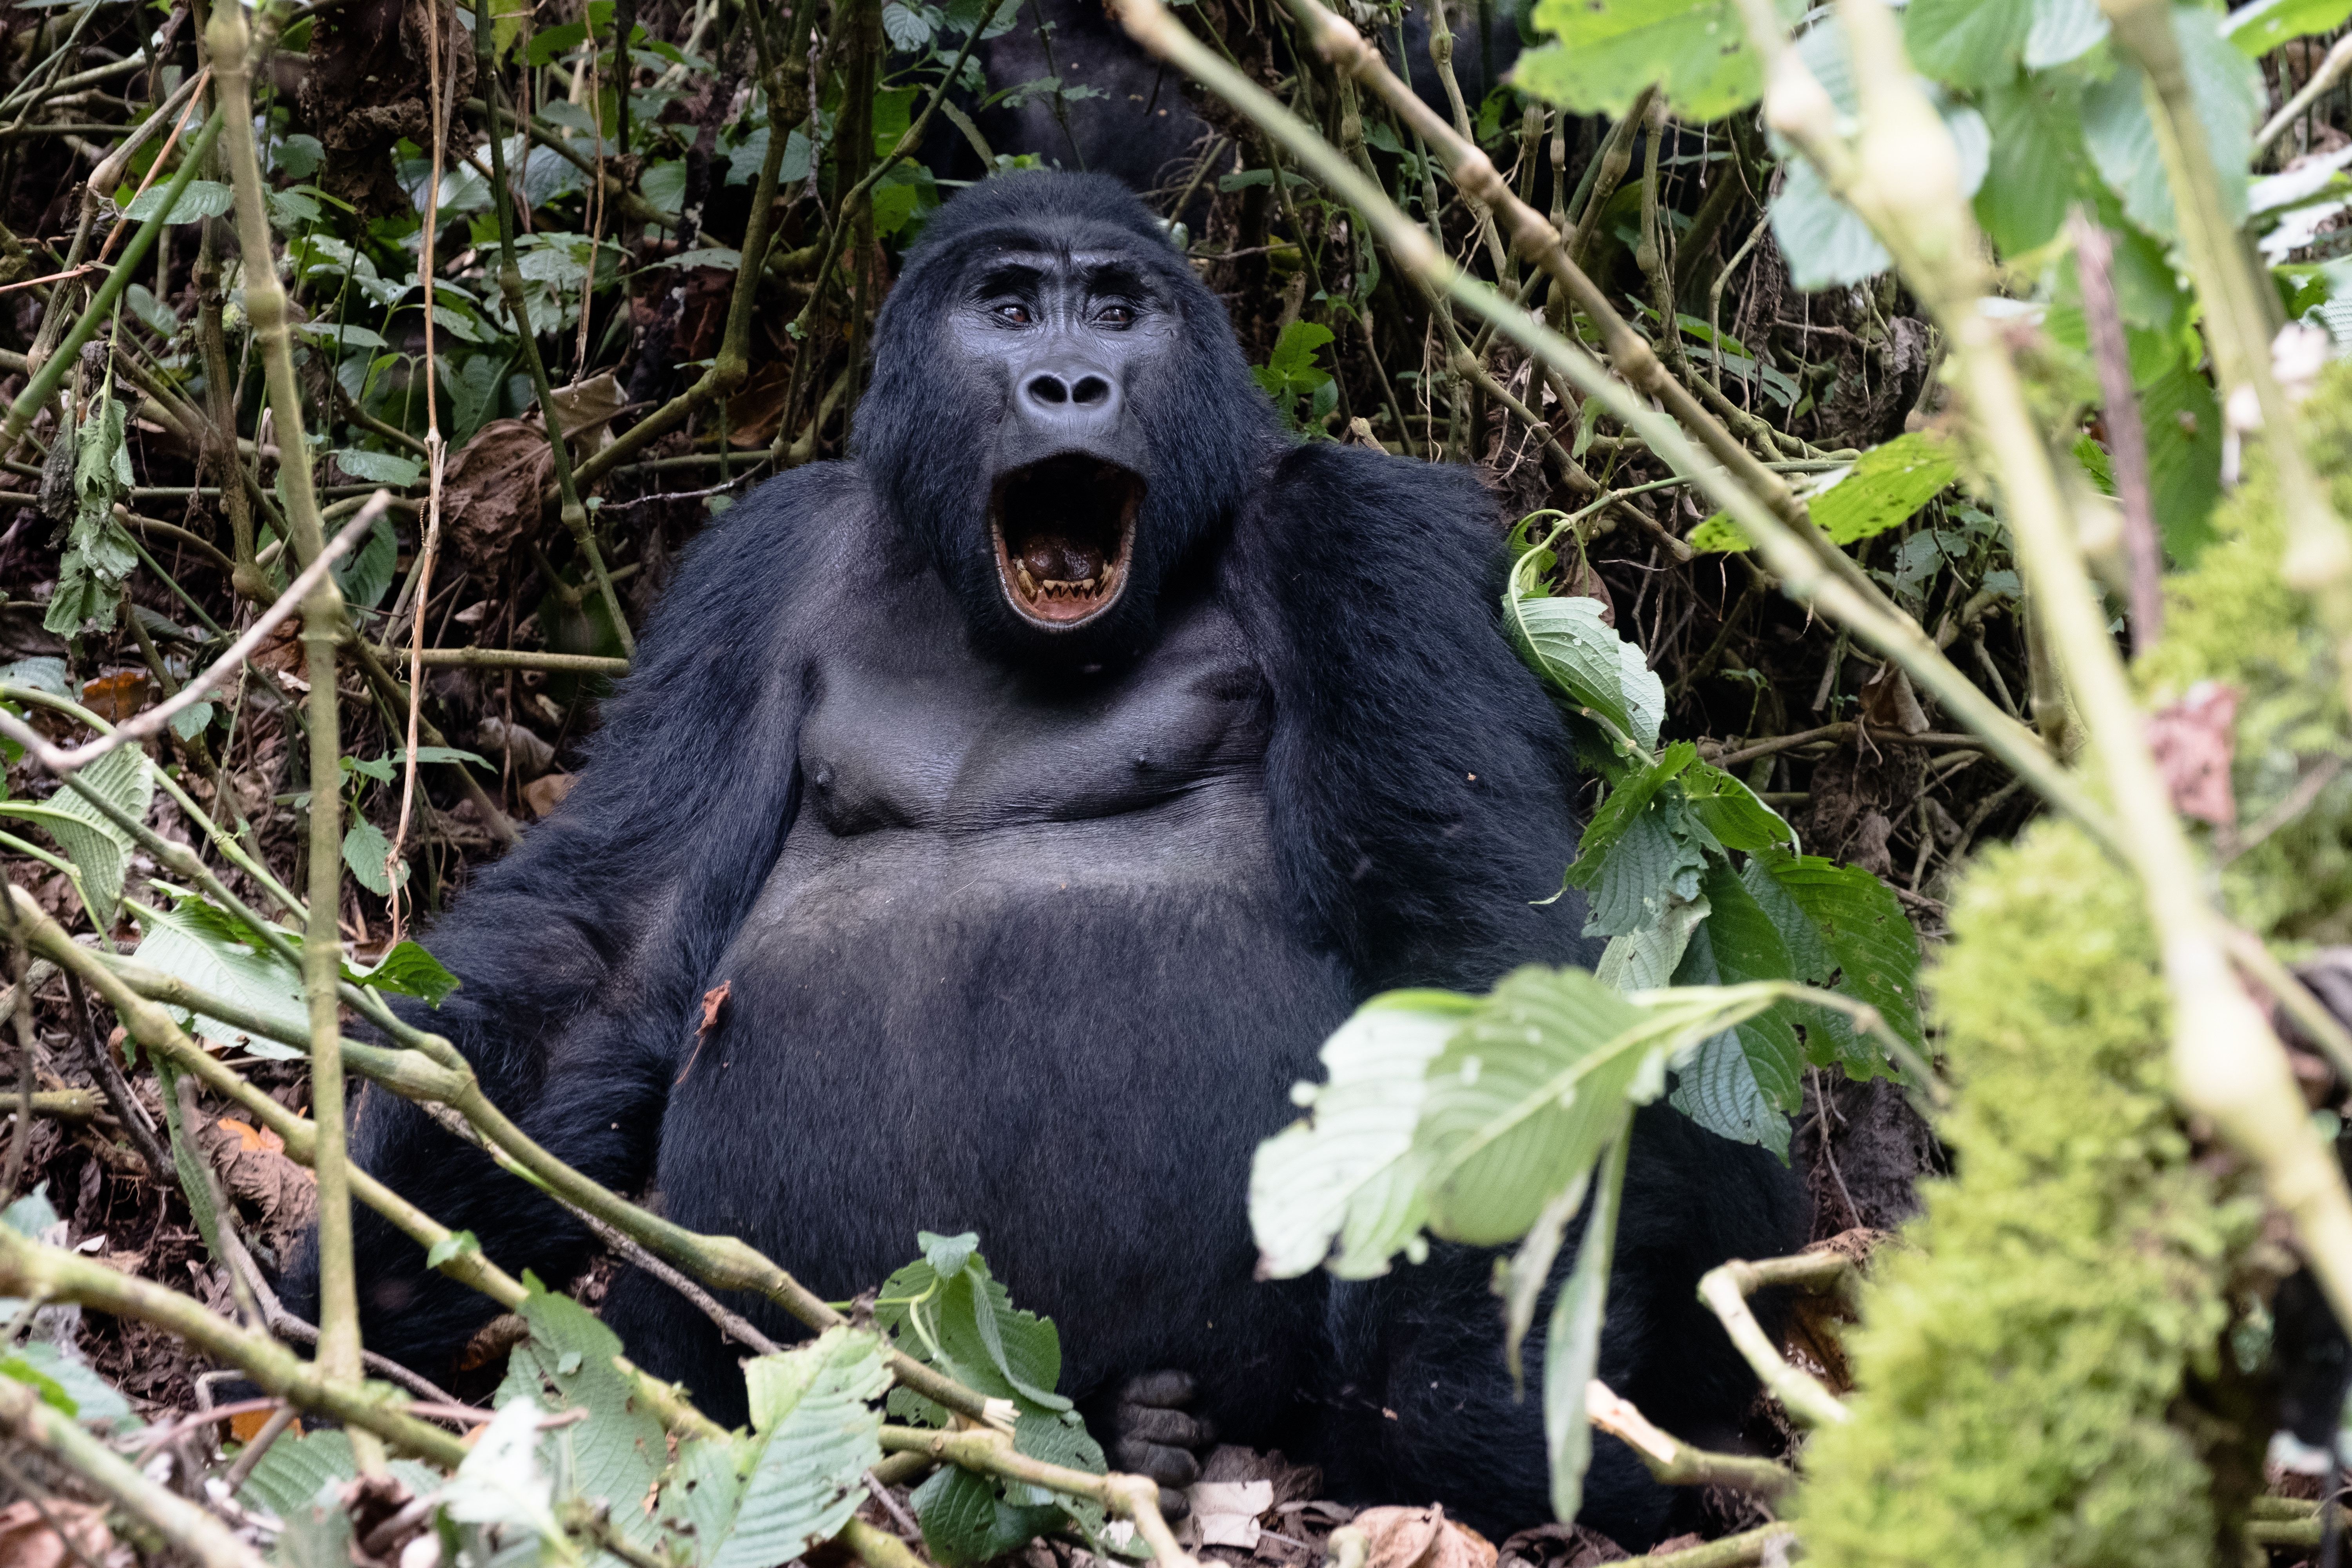 shocked gorilla to represent problems with unethical advertising